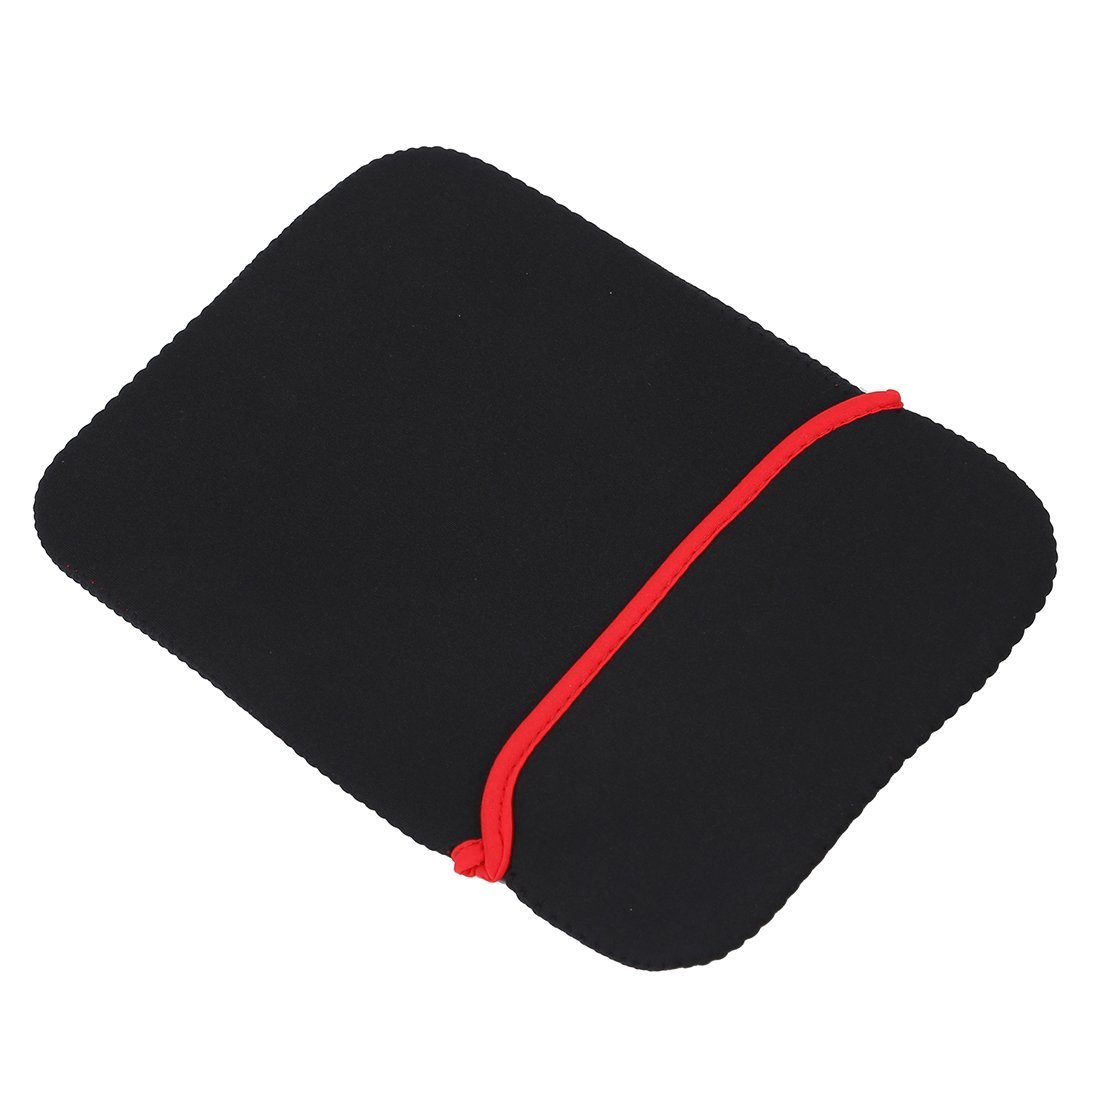 SODIAL Black 10 Inch Protective Soft Sleeve Pouch Case for Android Tablet PC Laptop R